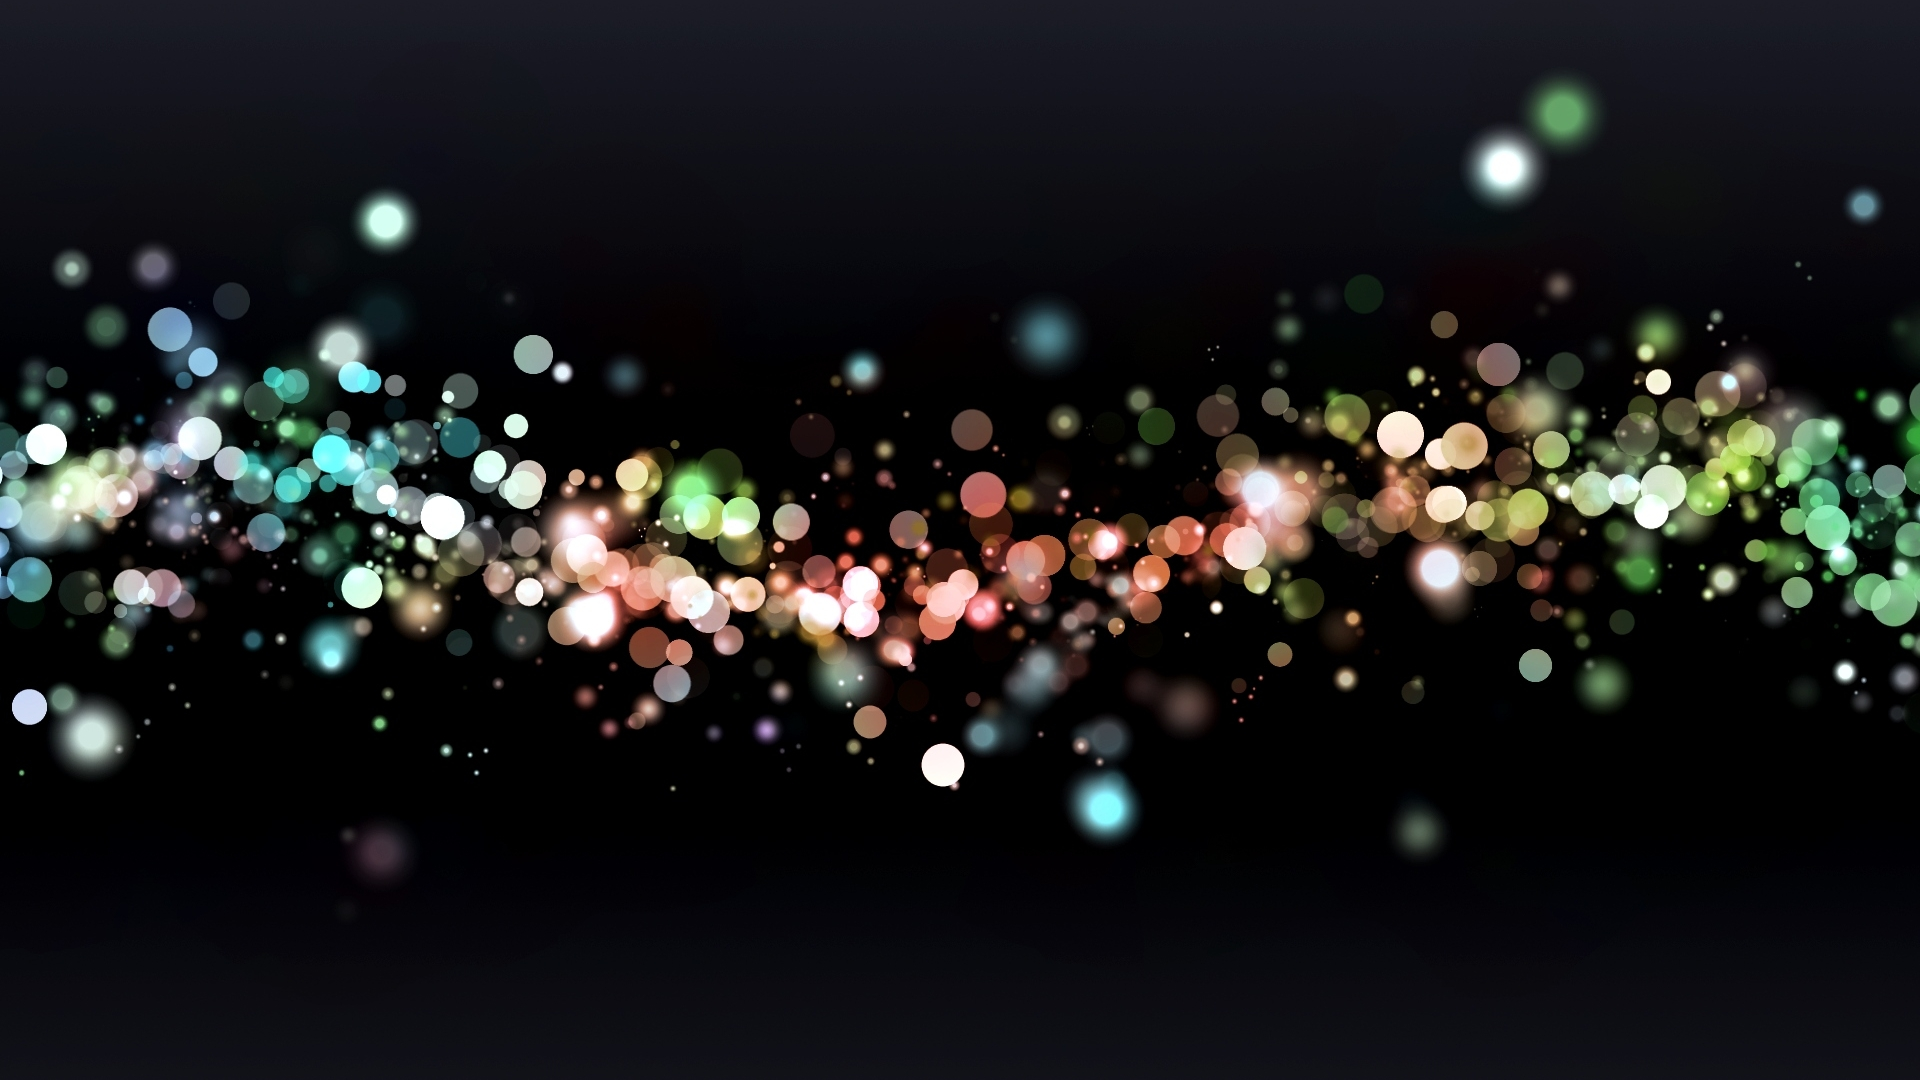 Sparkles Wallpapers